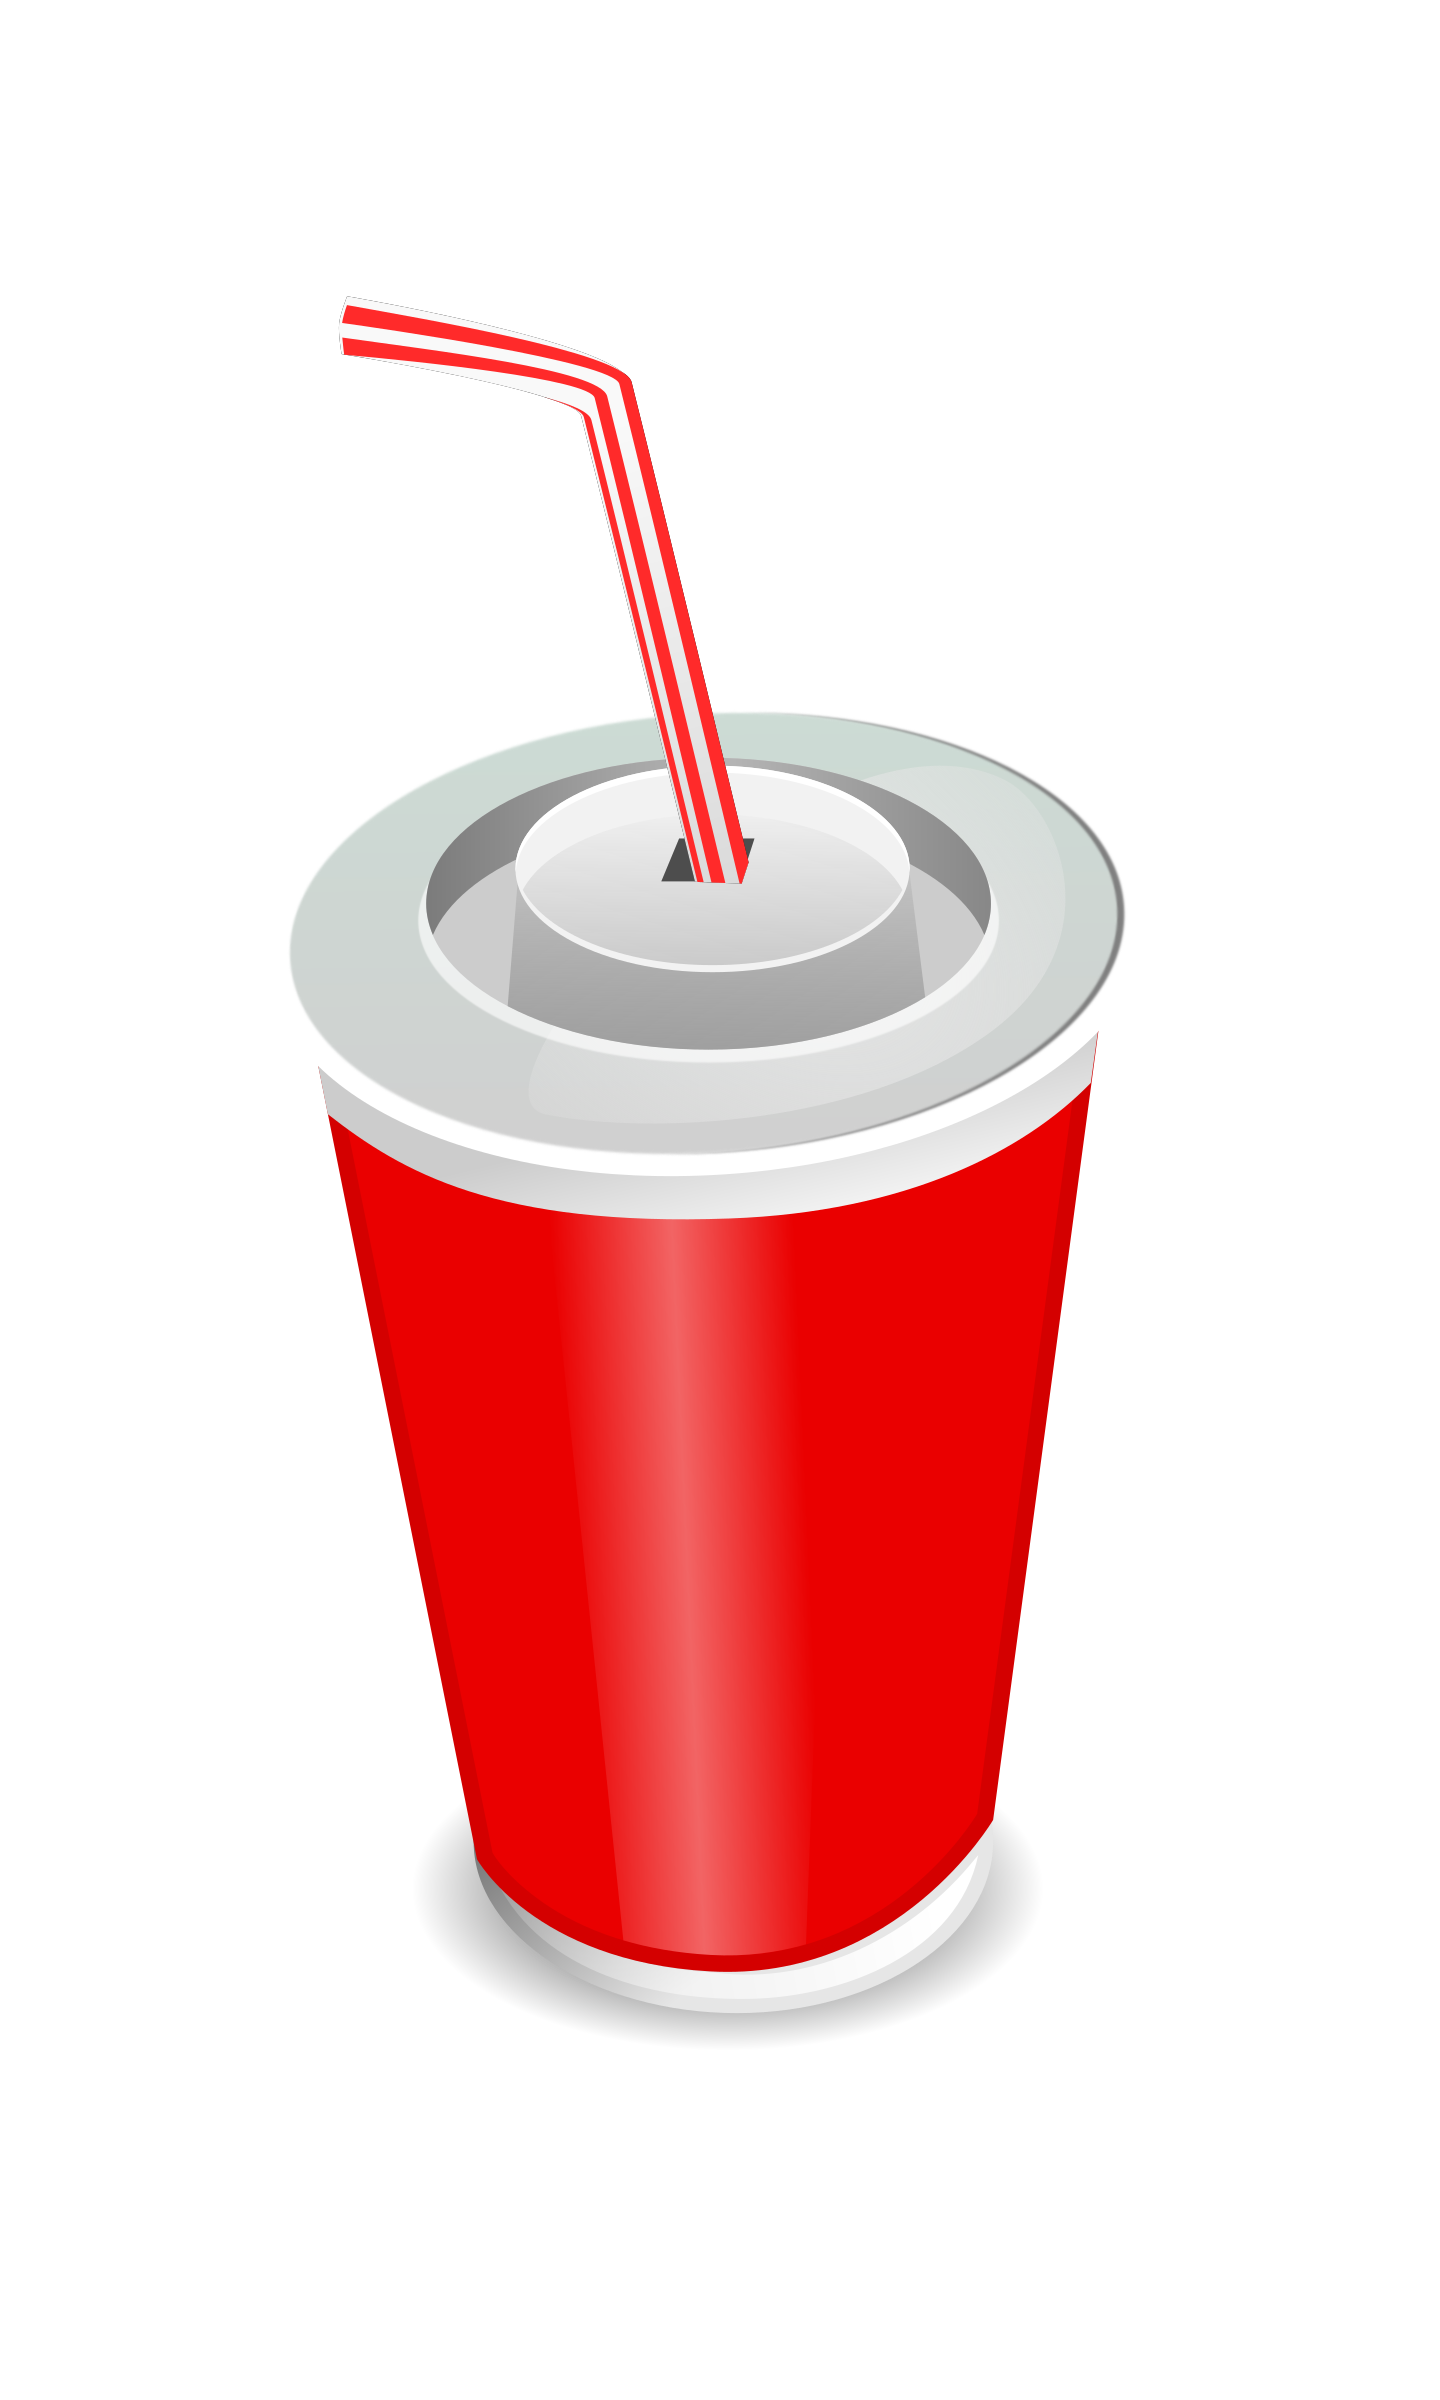 Drink clipart cool drink IMAGE Softdrink BIG Clipart (PNG)